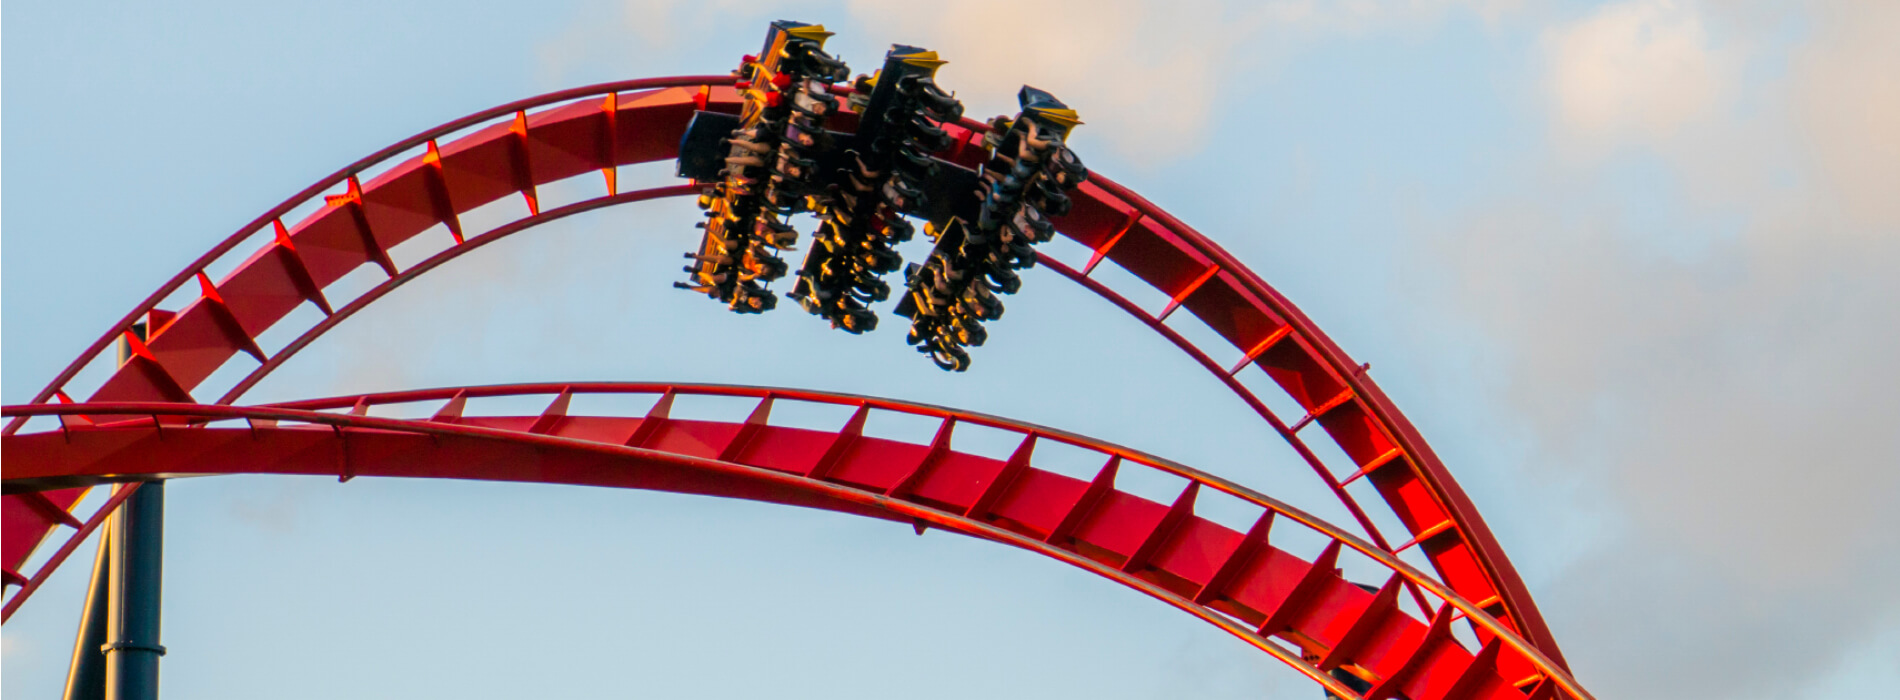 A group of people upside down as they ride through a loop on an intense red roller coaster called SheiKra at Busch Gardens Tampa Bay, located in Florida